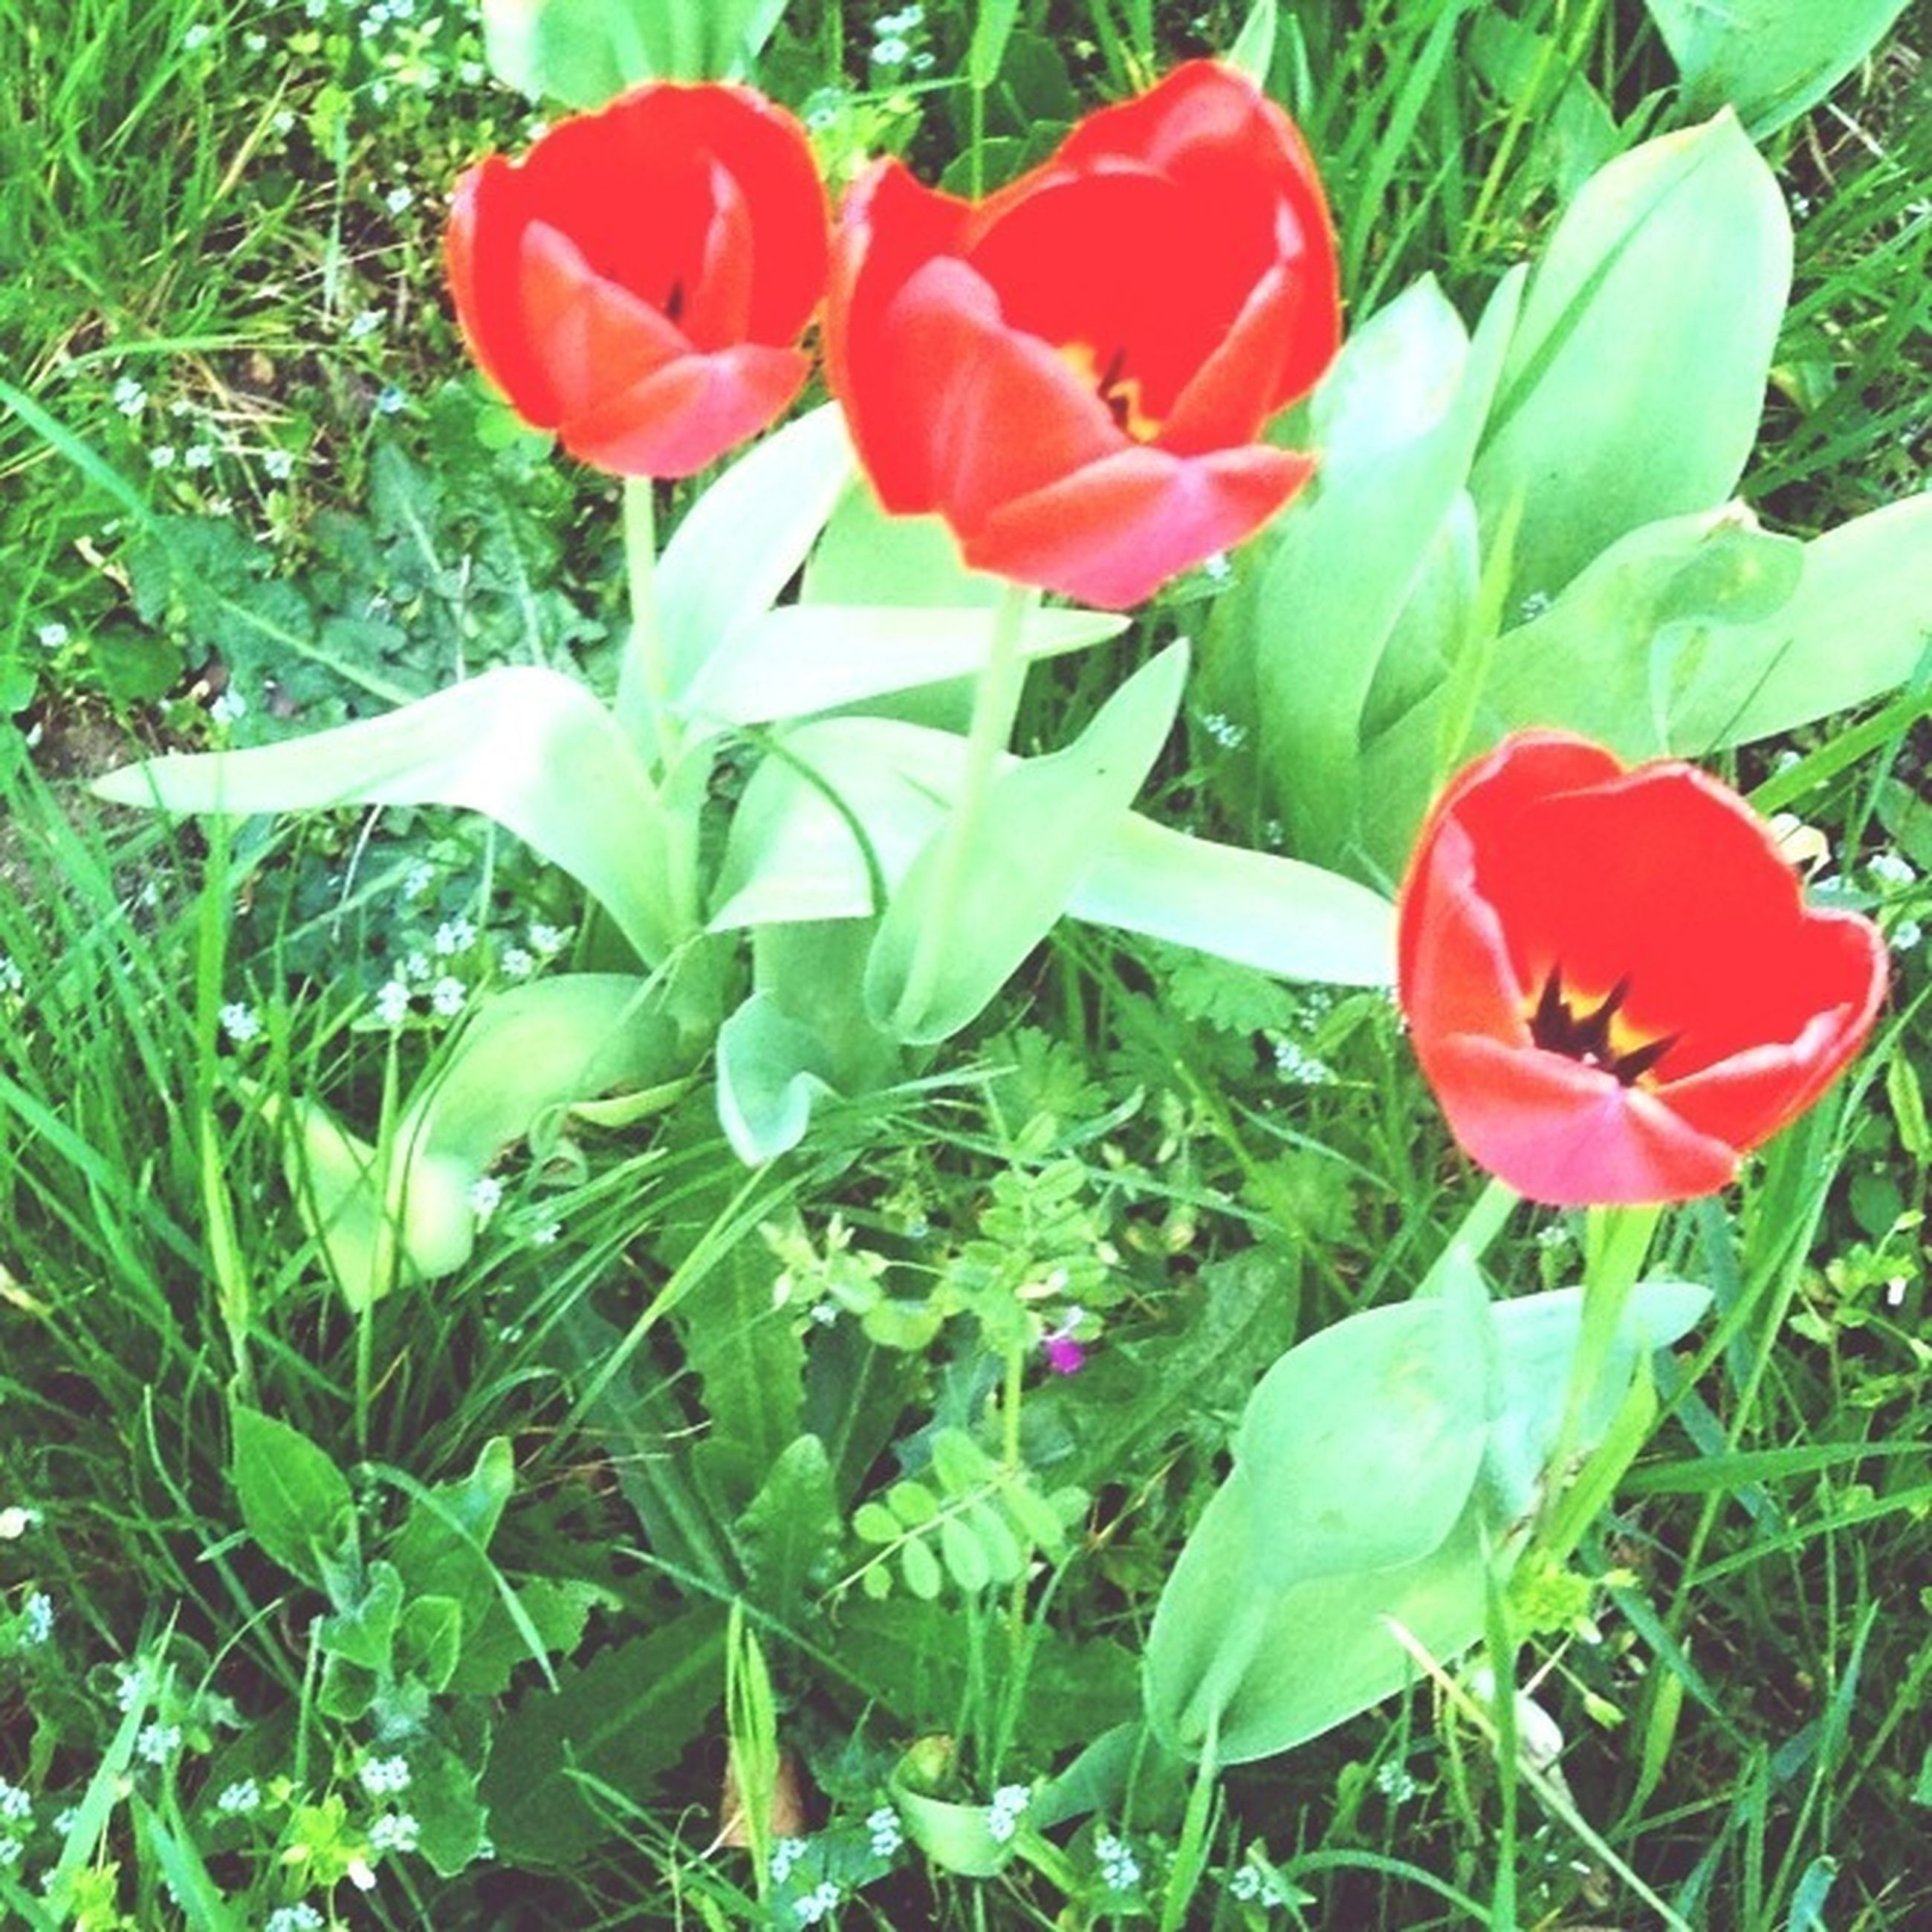 flower, freshness, red, petal, growth, fragility, flower head, plant, beauty in nature, blooming, nature, tulip, leaf, green color, field, high angle view, close-up, poppy, in bloom, day